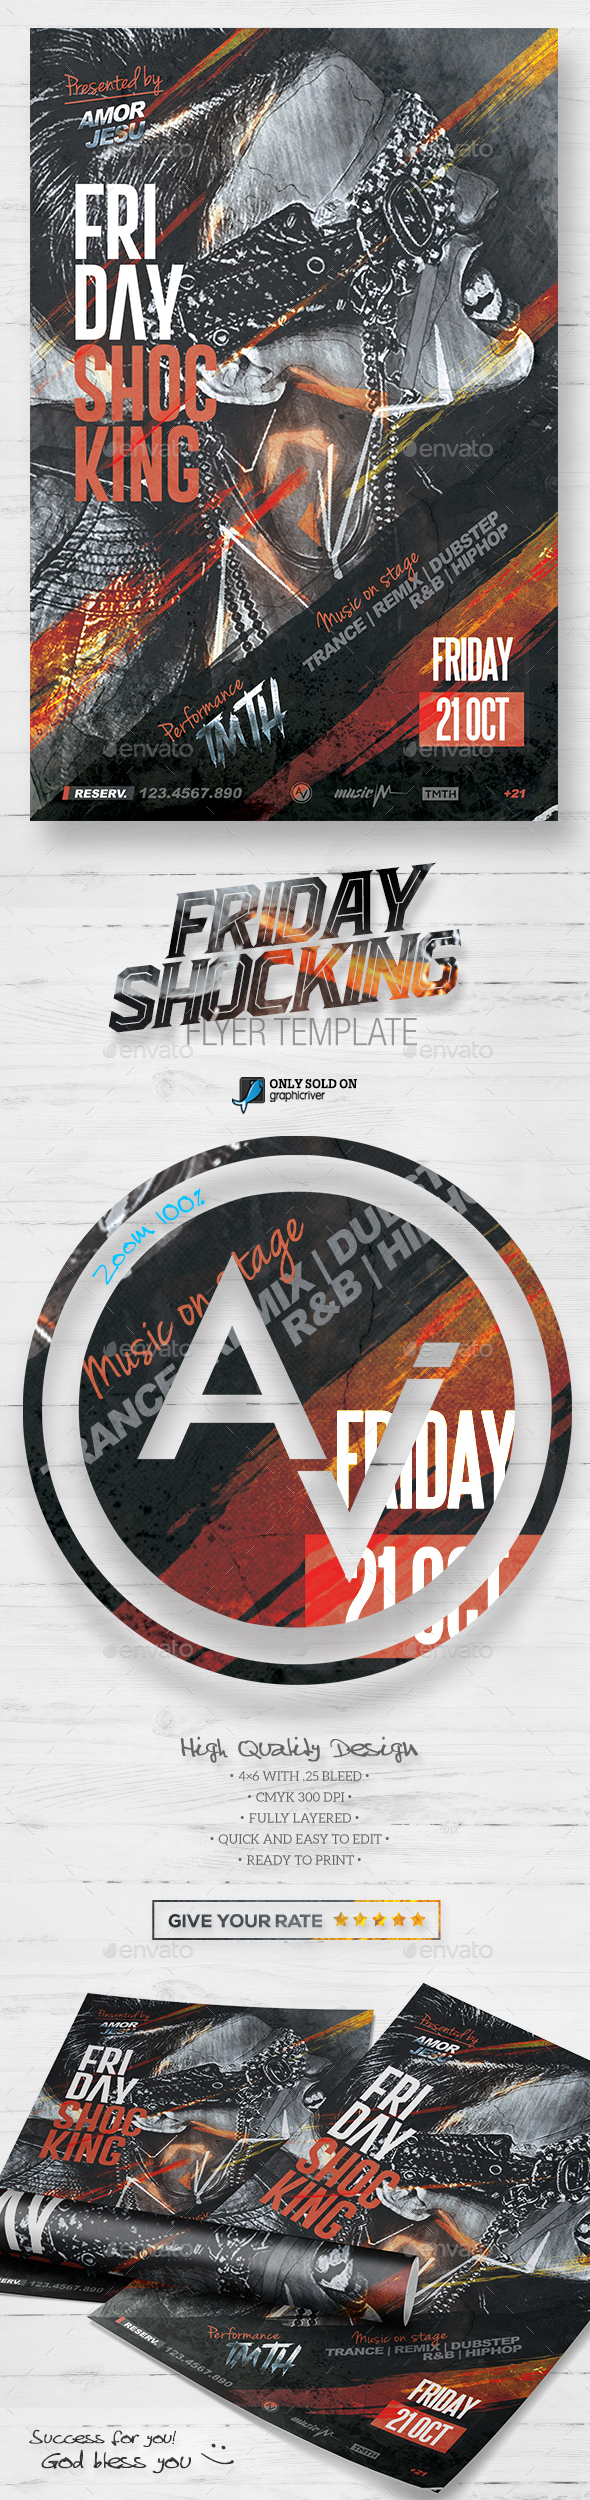 Friday Shocking Flyer Template V2 - Clubs & Parties Events